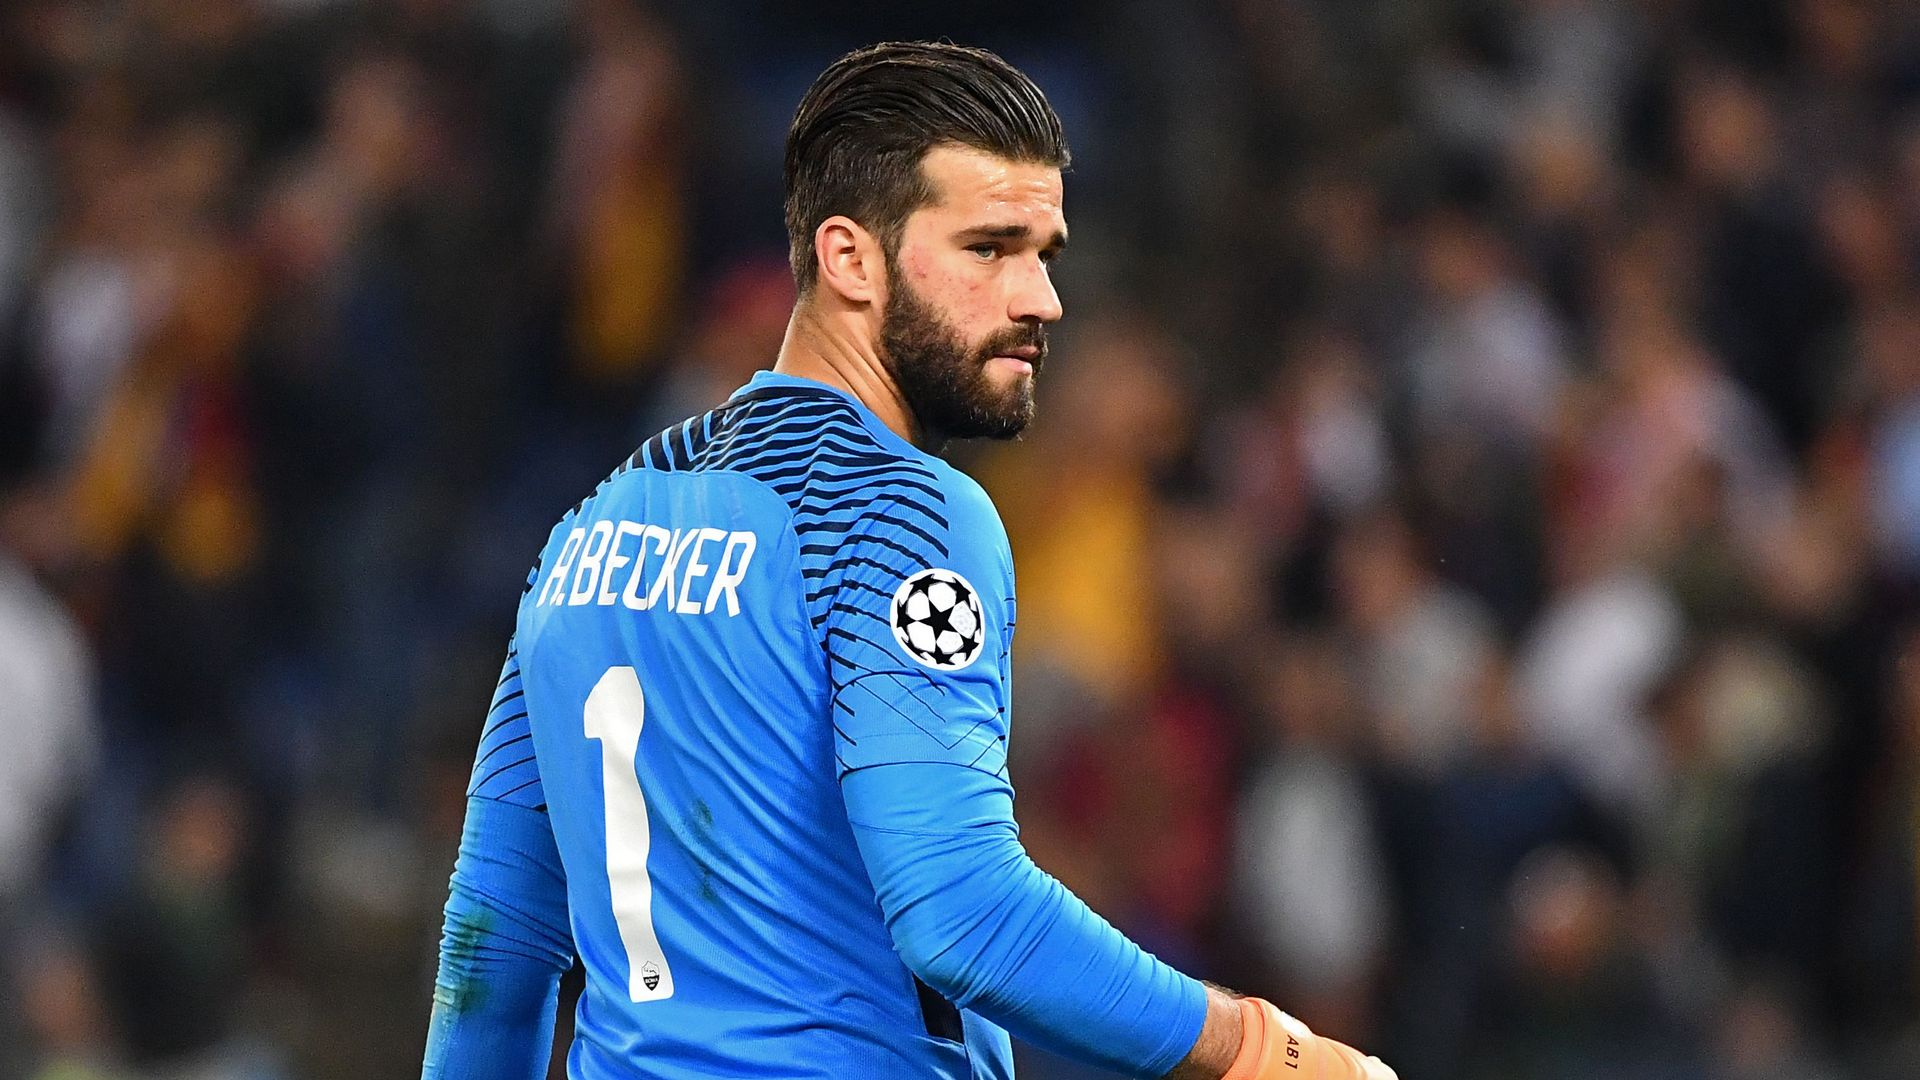 c679dc575d5 Alisson to Liverpool: Roma 'couldn't say no' to £65m offer, says ...